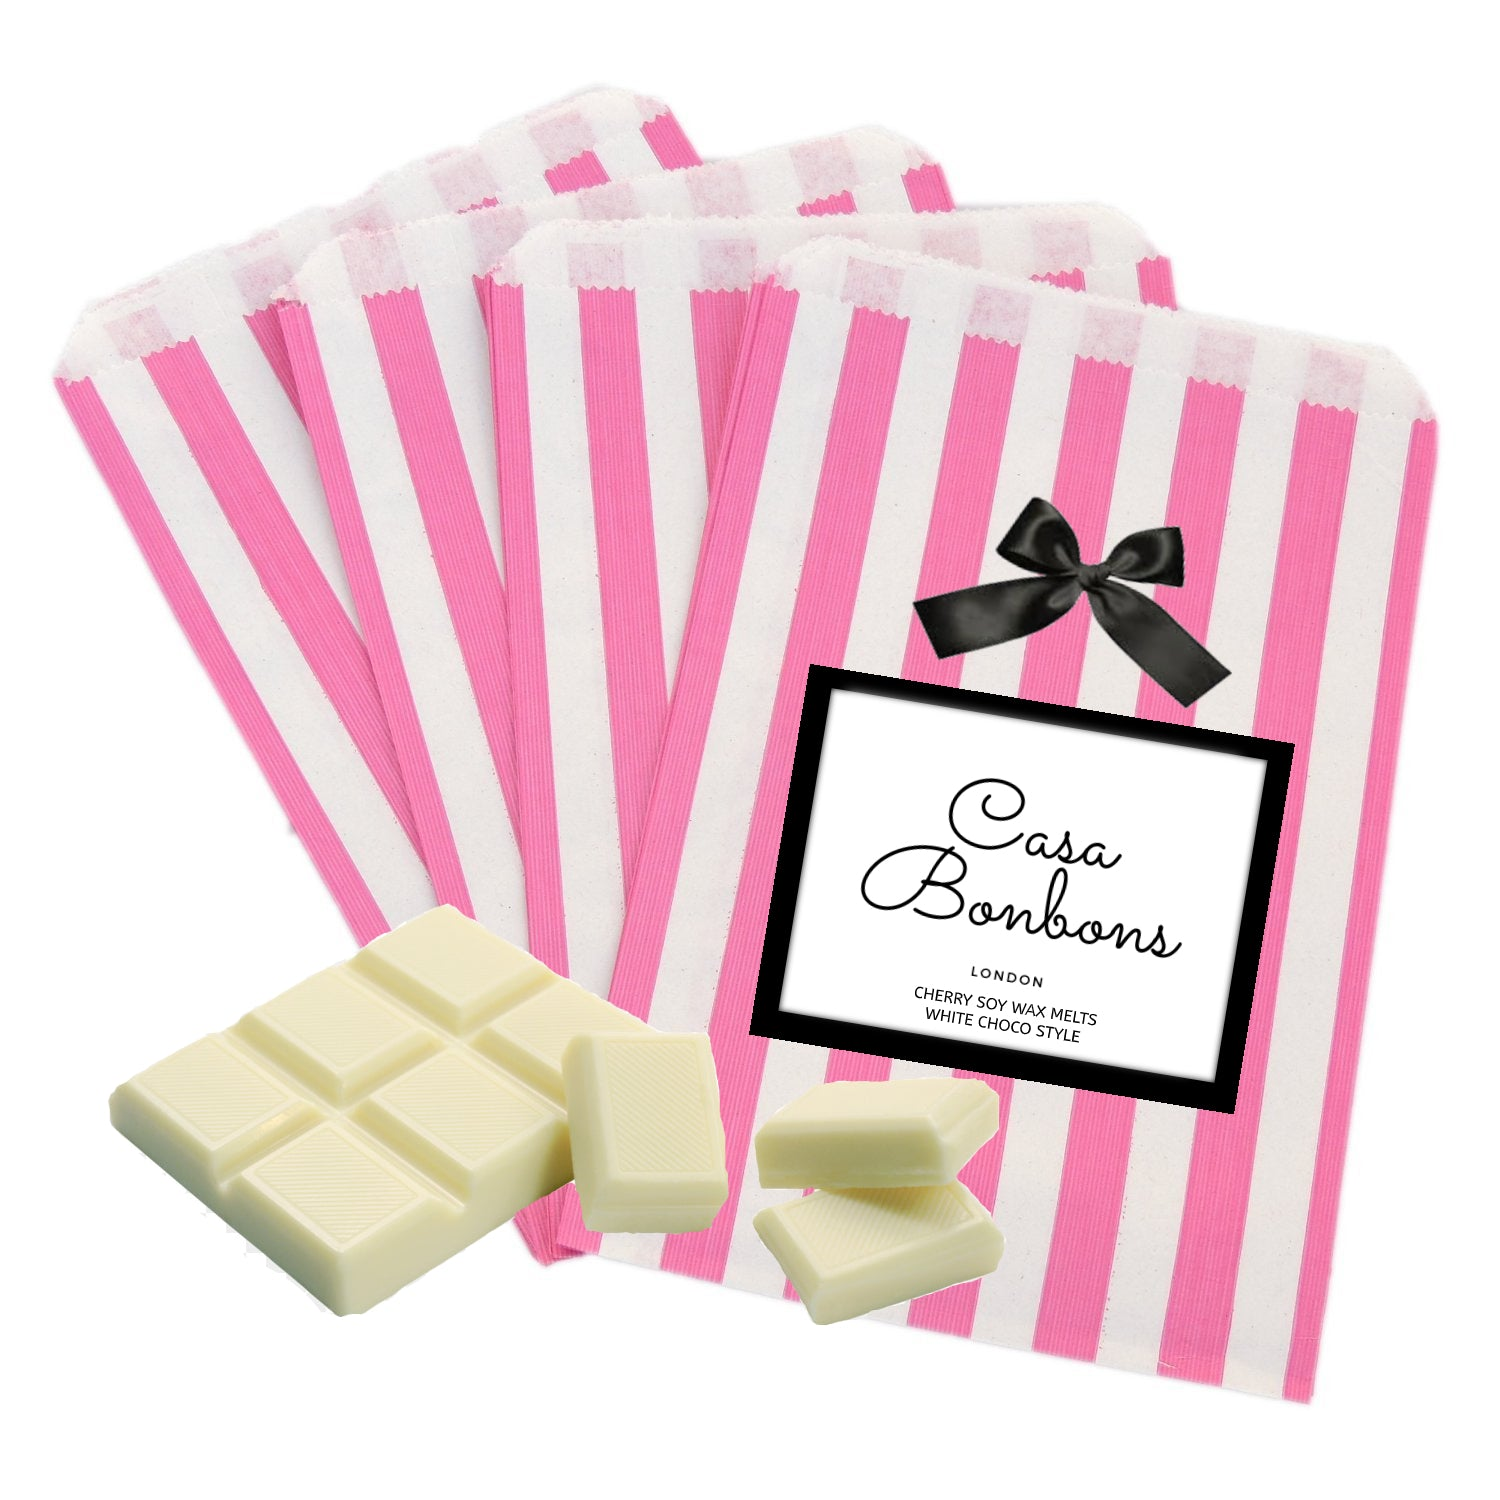 Cherry gentle scented white chocolate style Soy Wax Melts,  PRE ORDER delivery end of February - natoorio